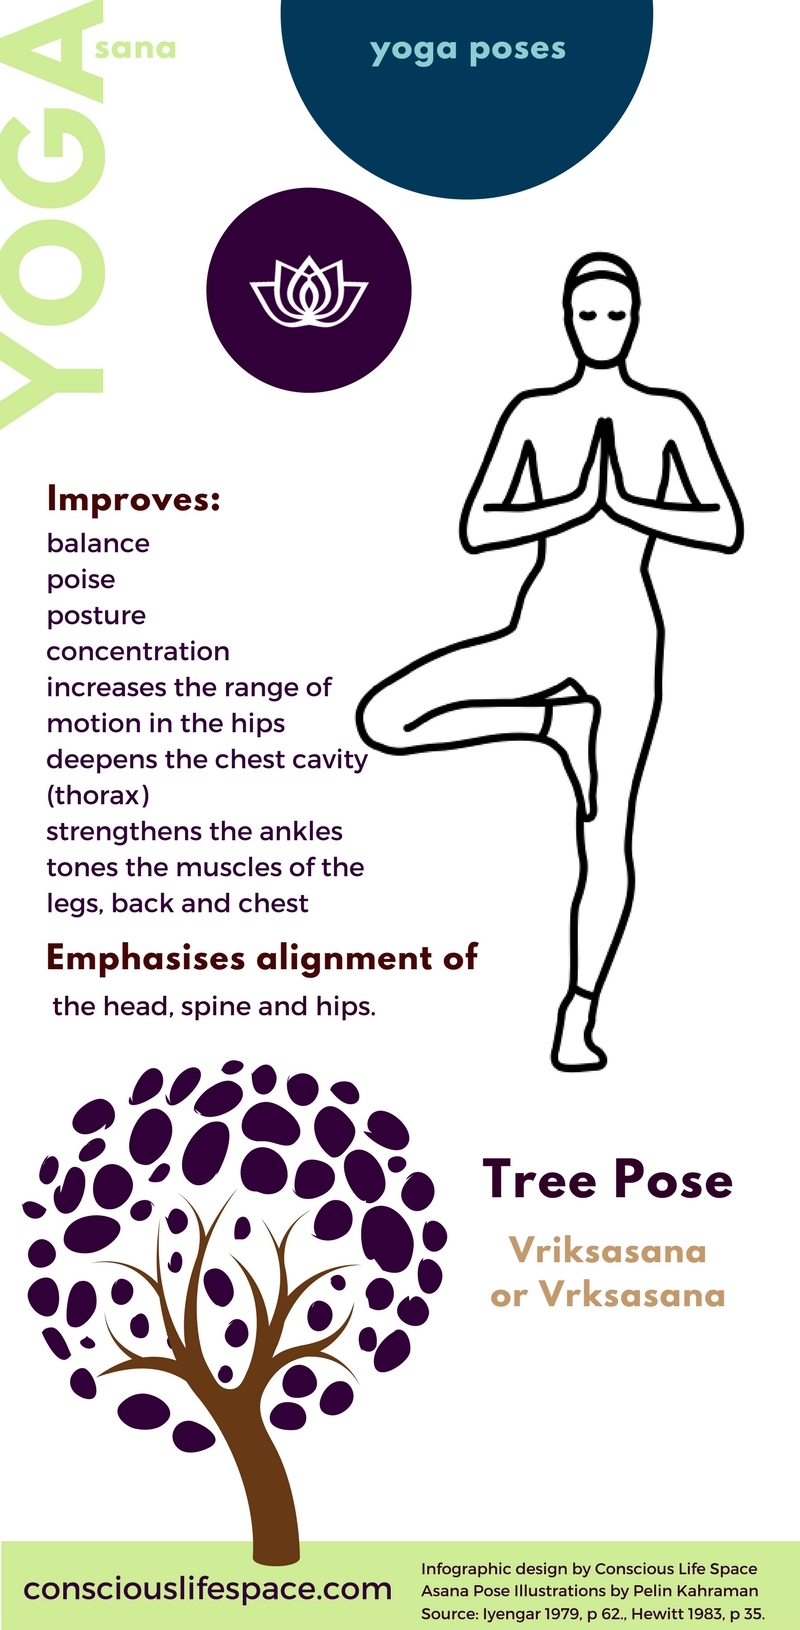 Tree Pose Infographic, Vriksasana by Conscious Life Space (License CC 4.0 Intl Attribution)